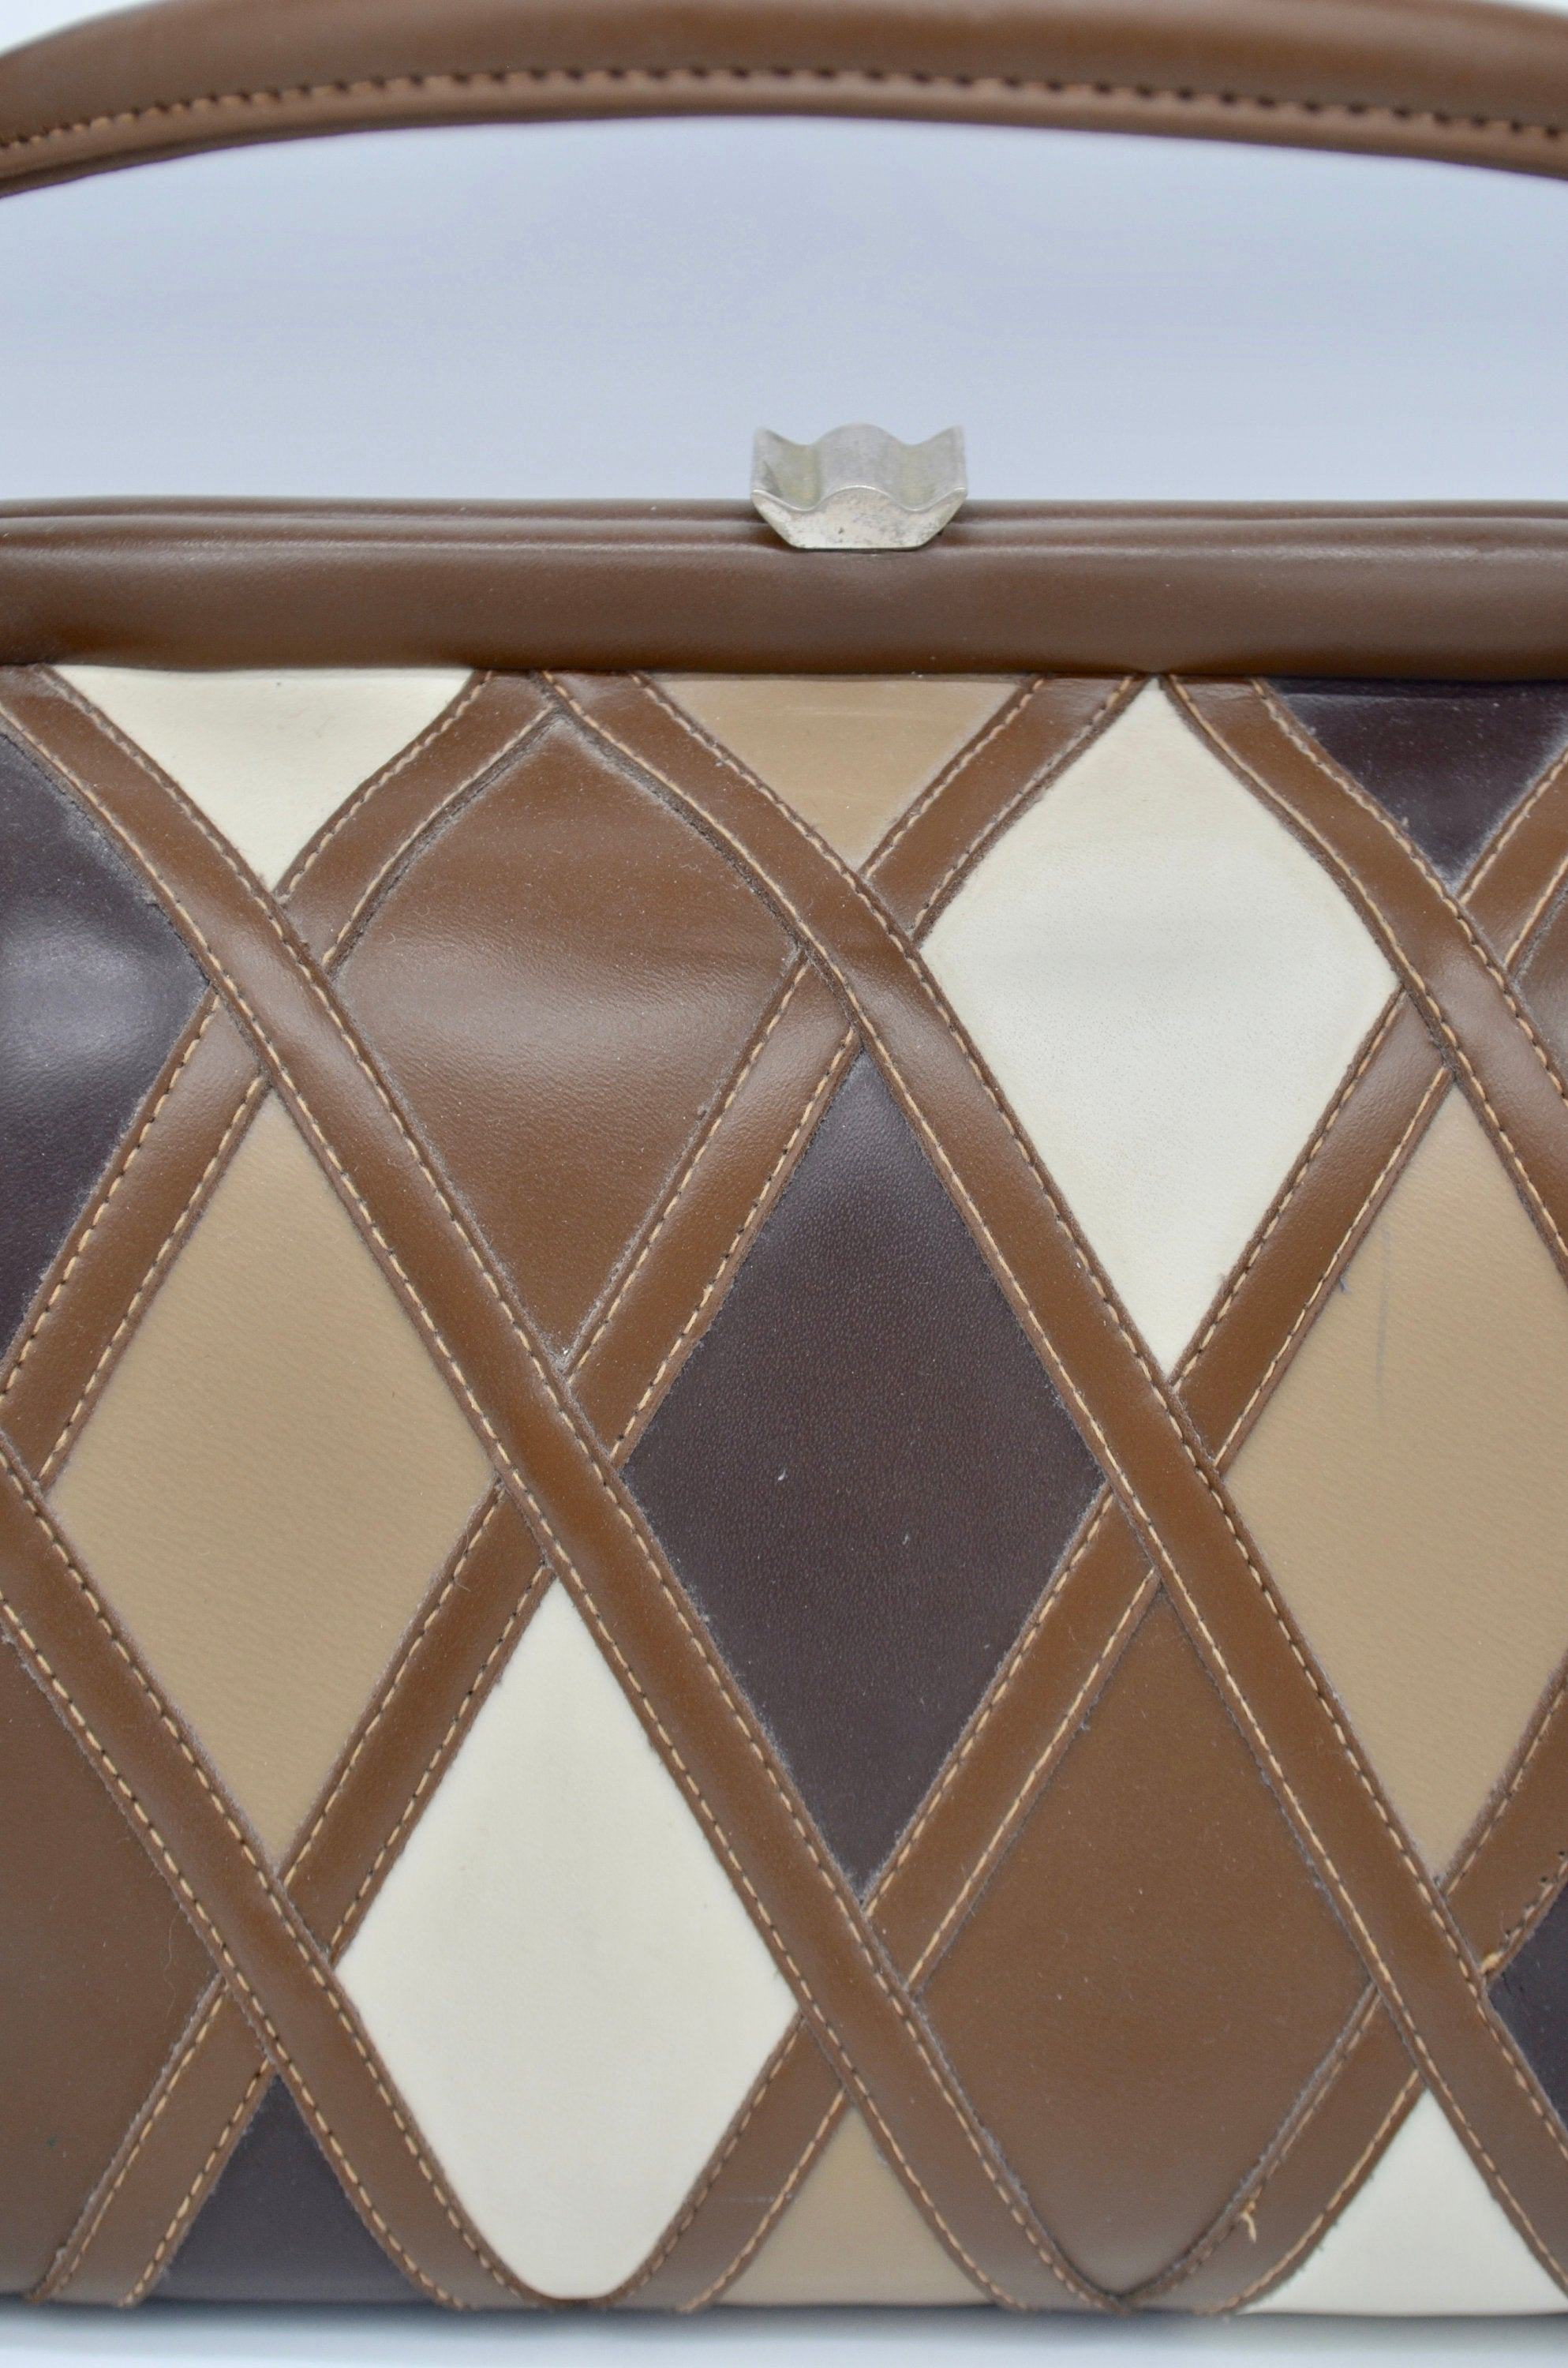 Mod Patchwork Leather Doctor Mini Purses Tan Beige Brown Dulles Bag Miniature Carry On